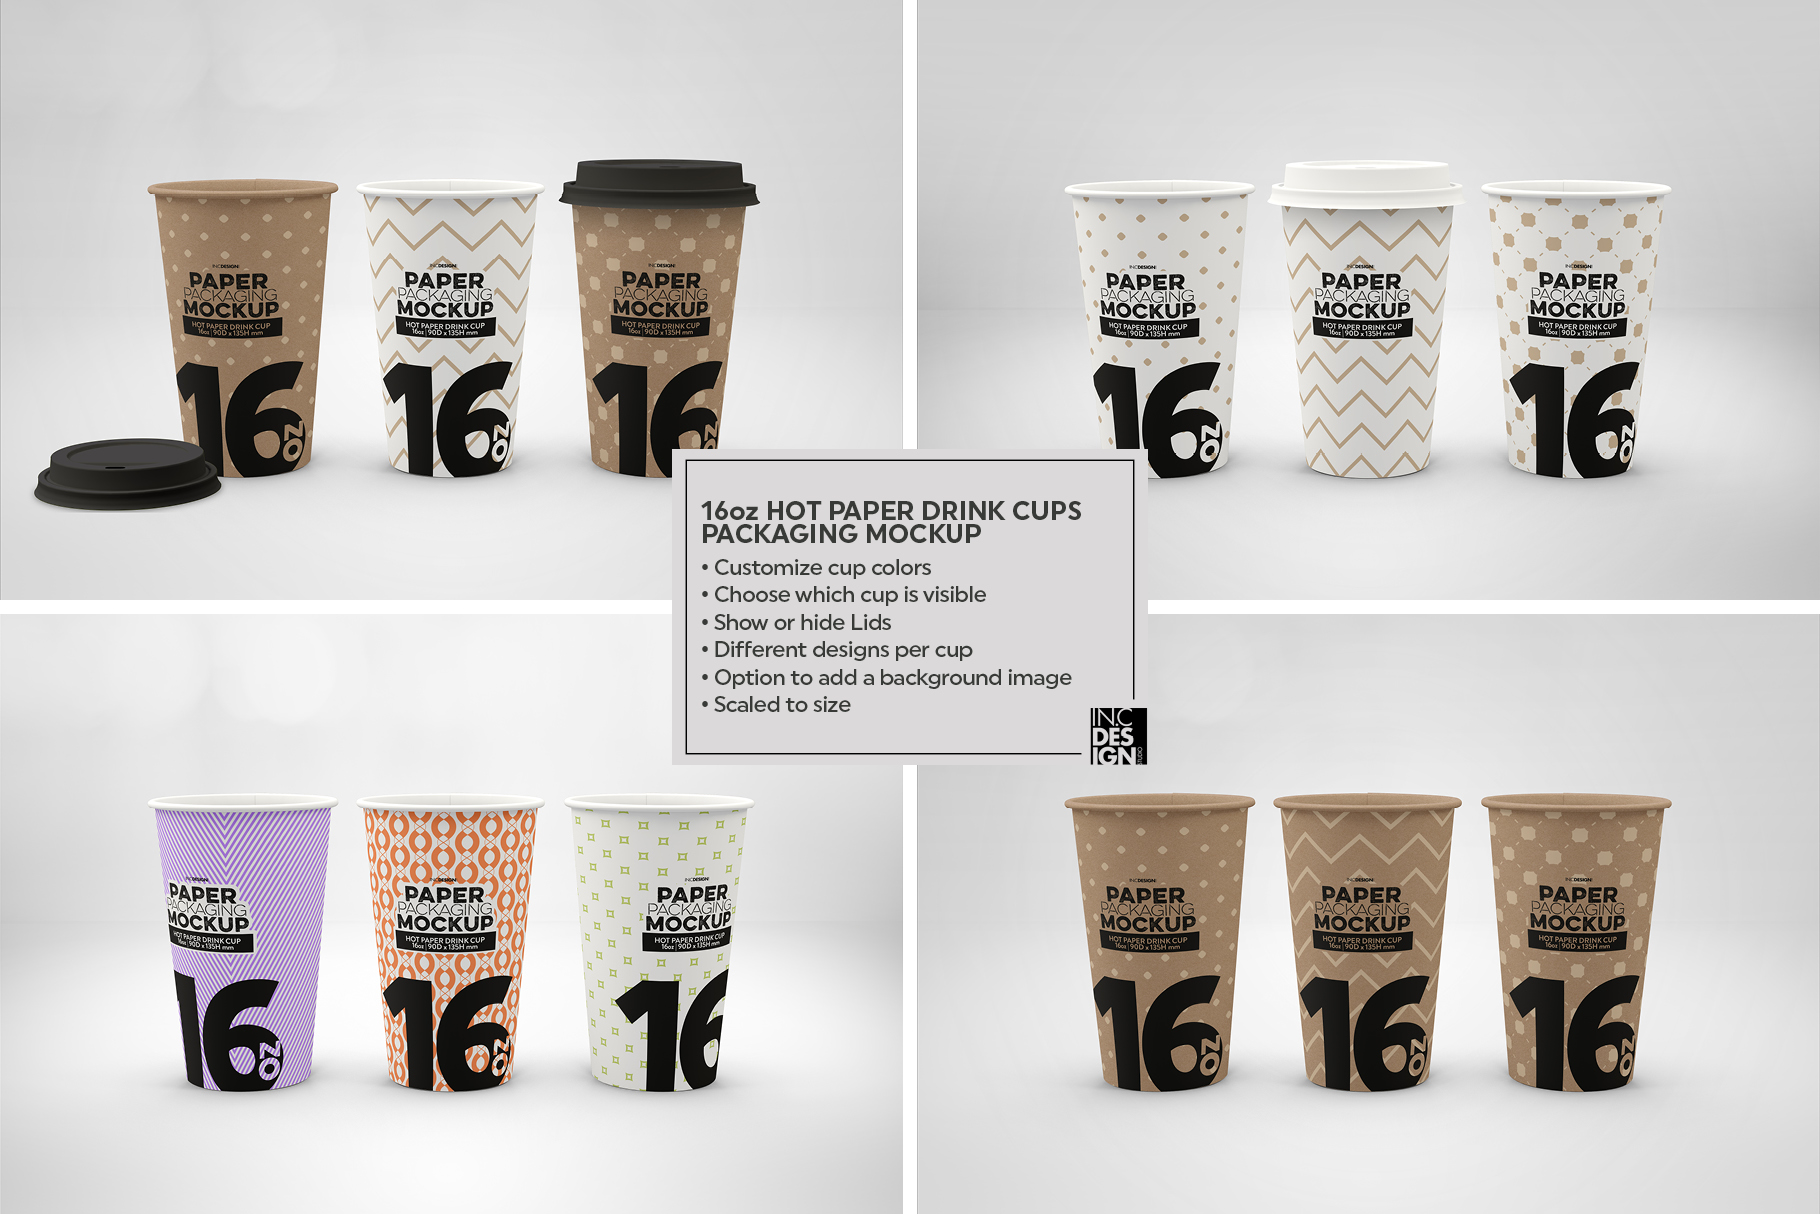 Paper Hot Drink Cups Packaging Mockup example image 12